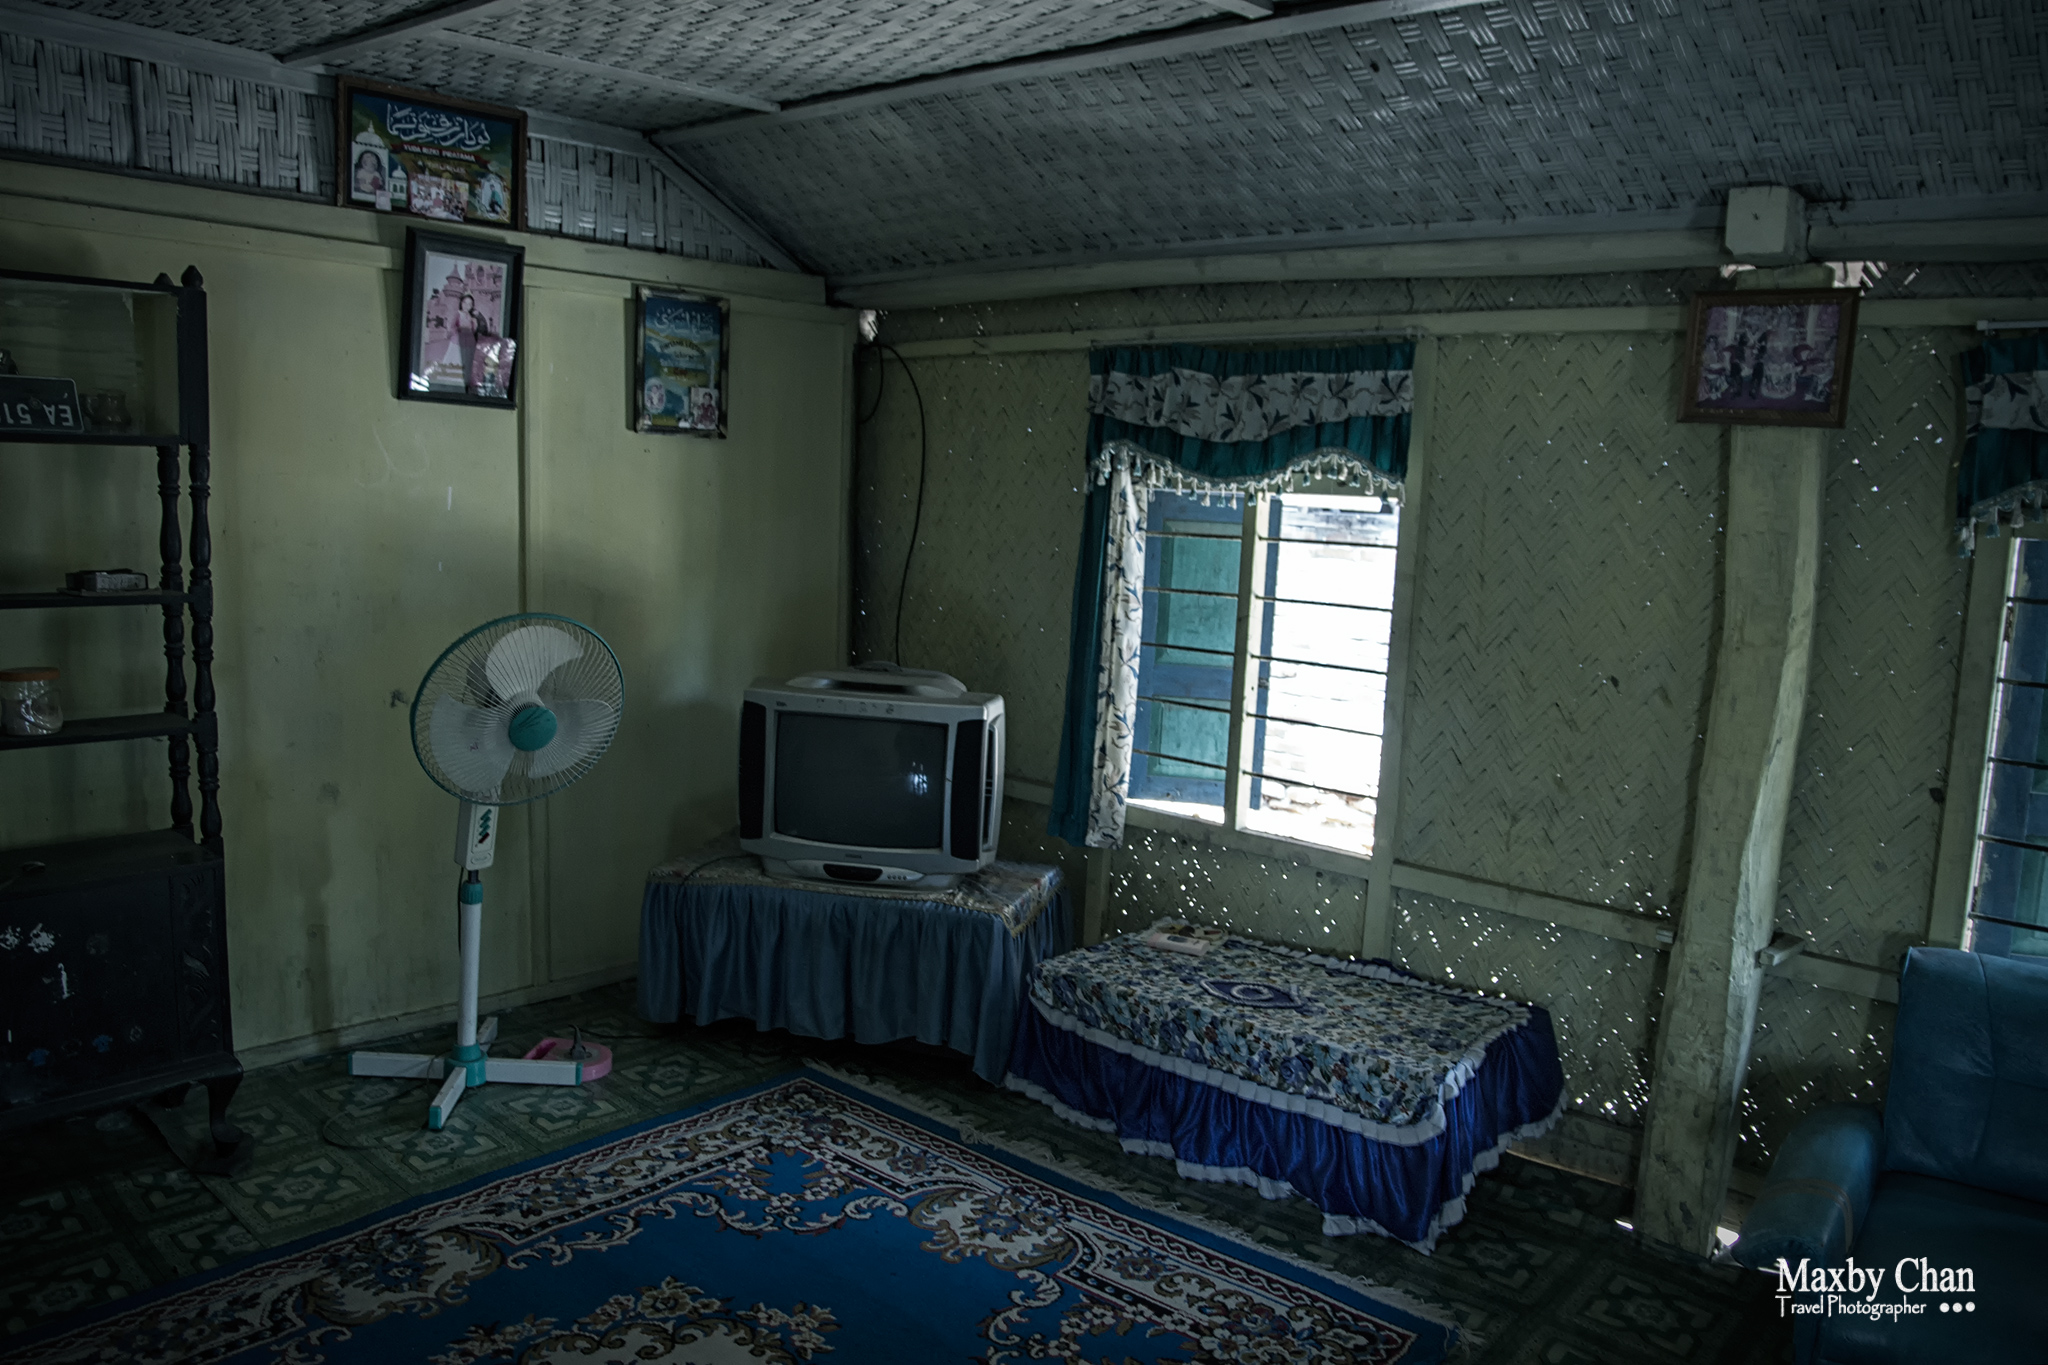 Inside Ayup's home in the village.